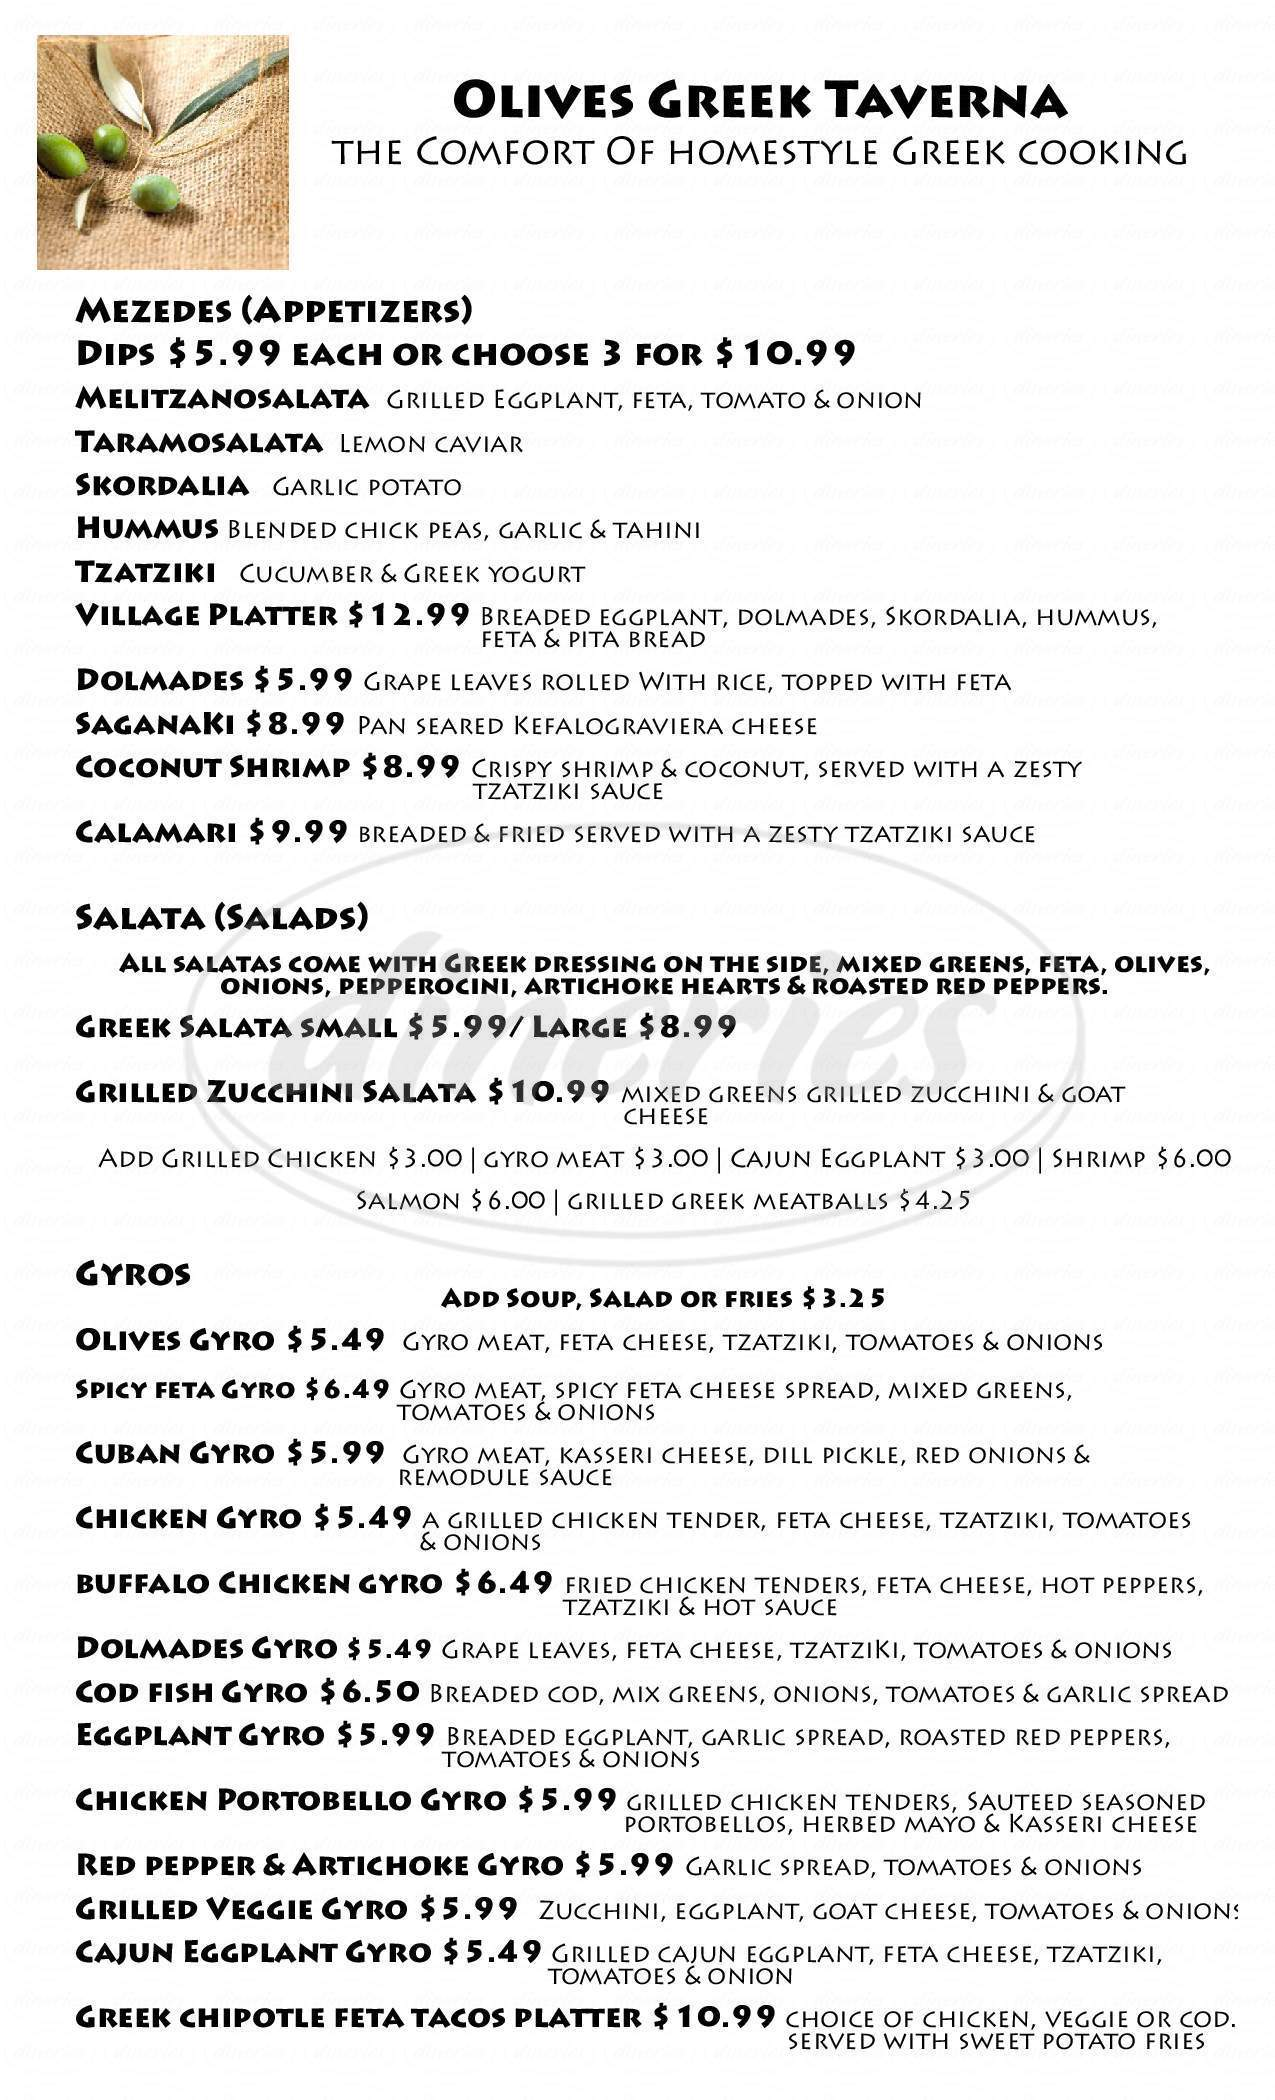 menu for Olives Greek Taverna